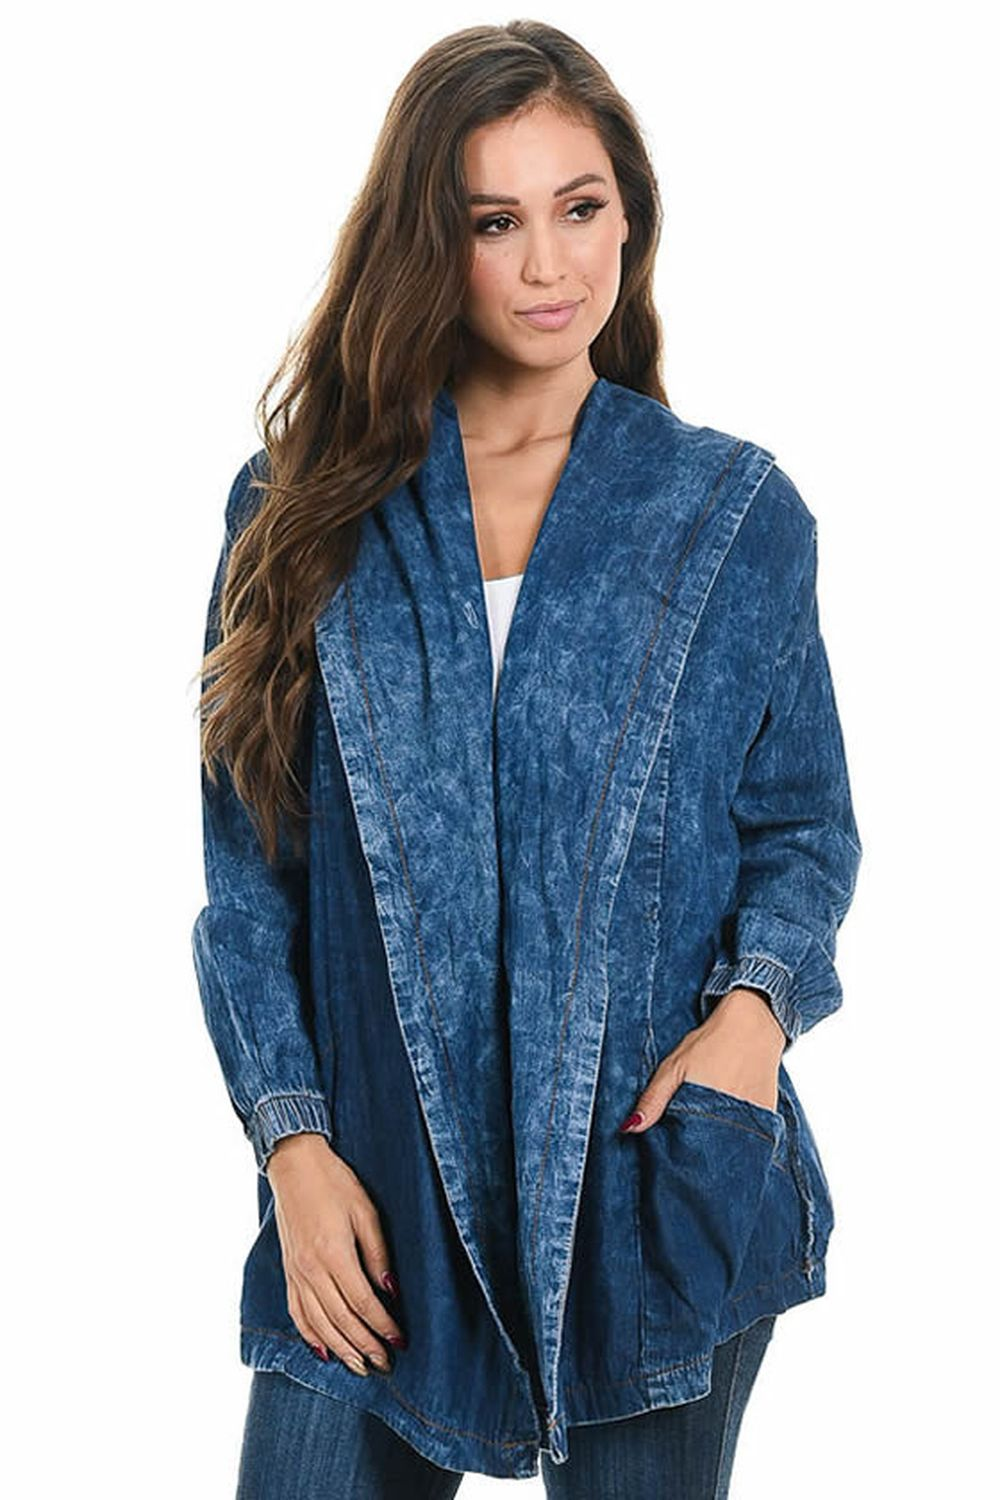 Sweet Look Women's Denim Jacket - Style K781